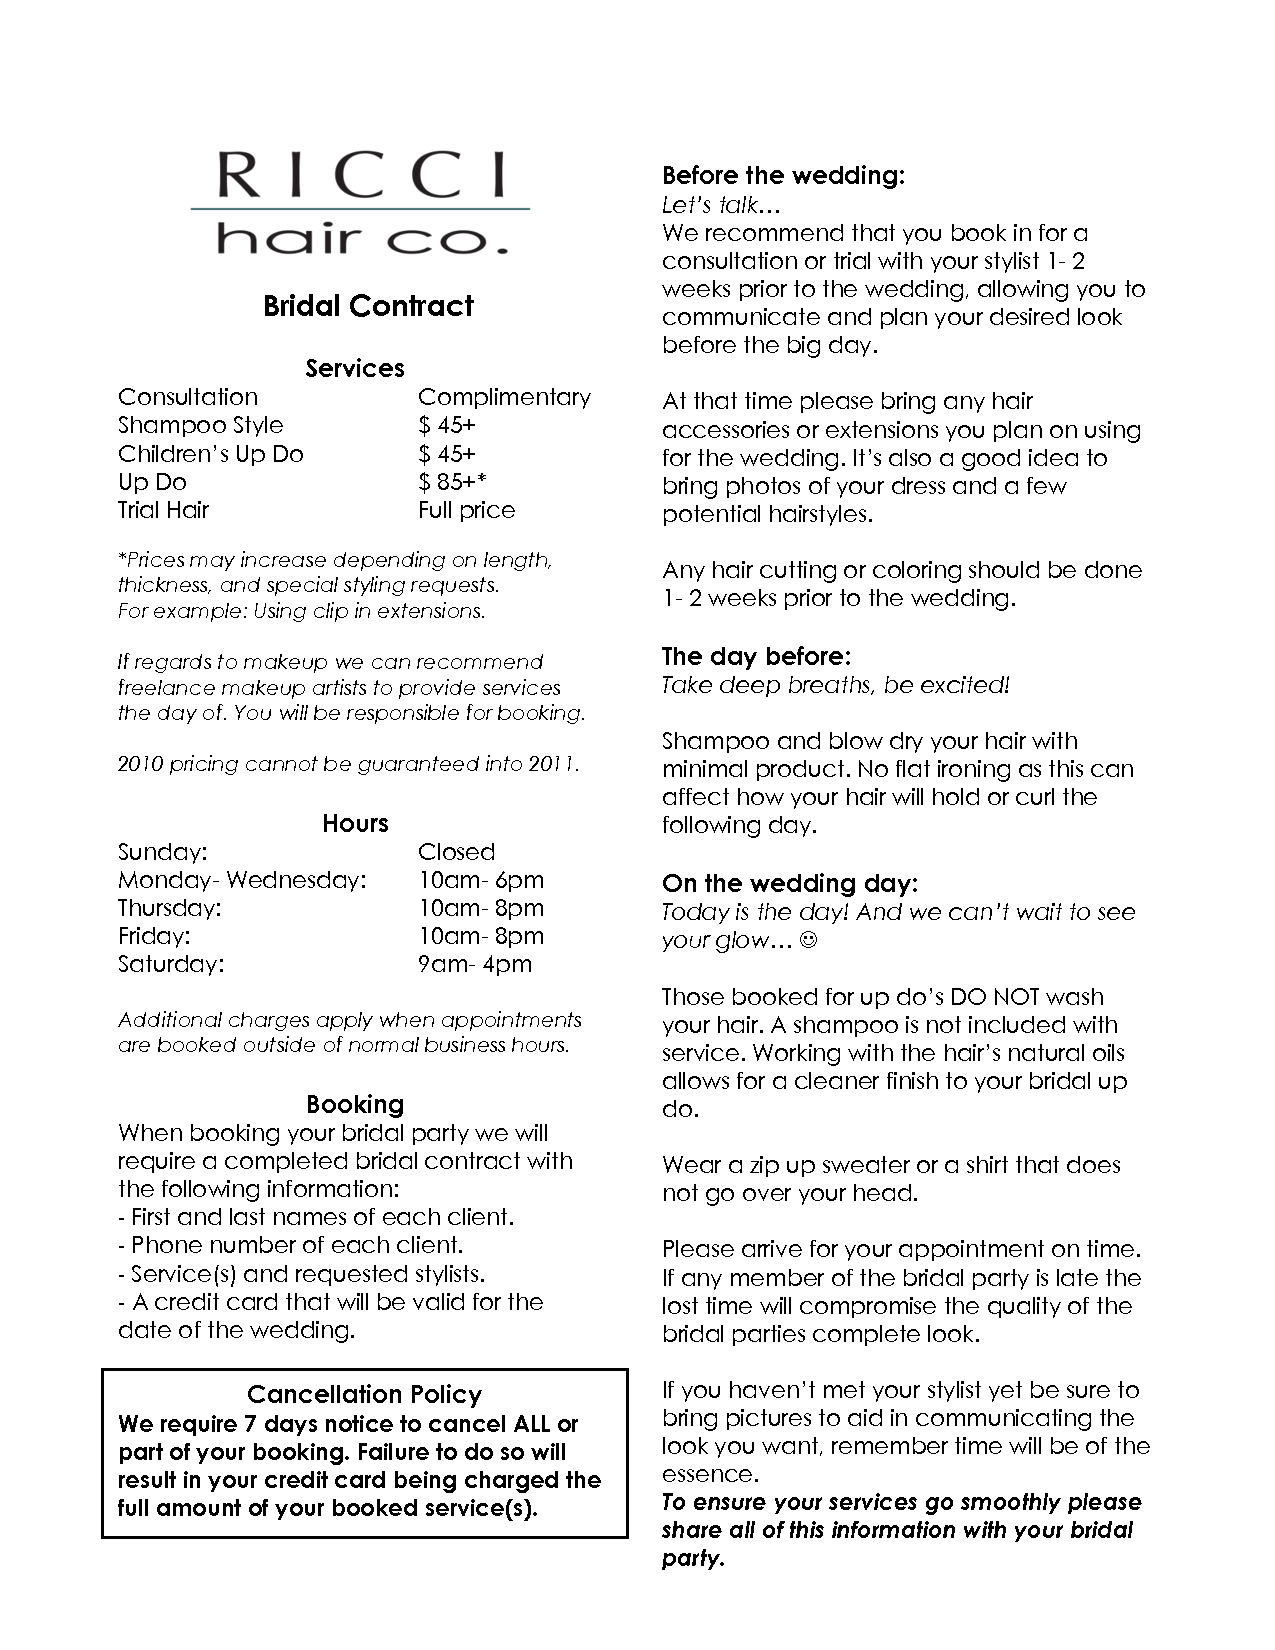 bridalhaircotract bridal hair stylist contract